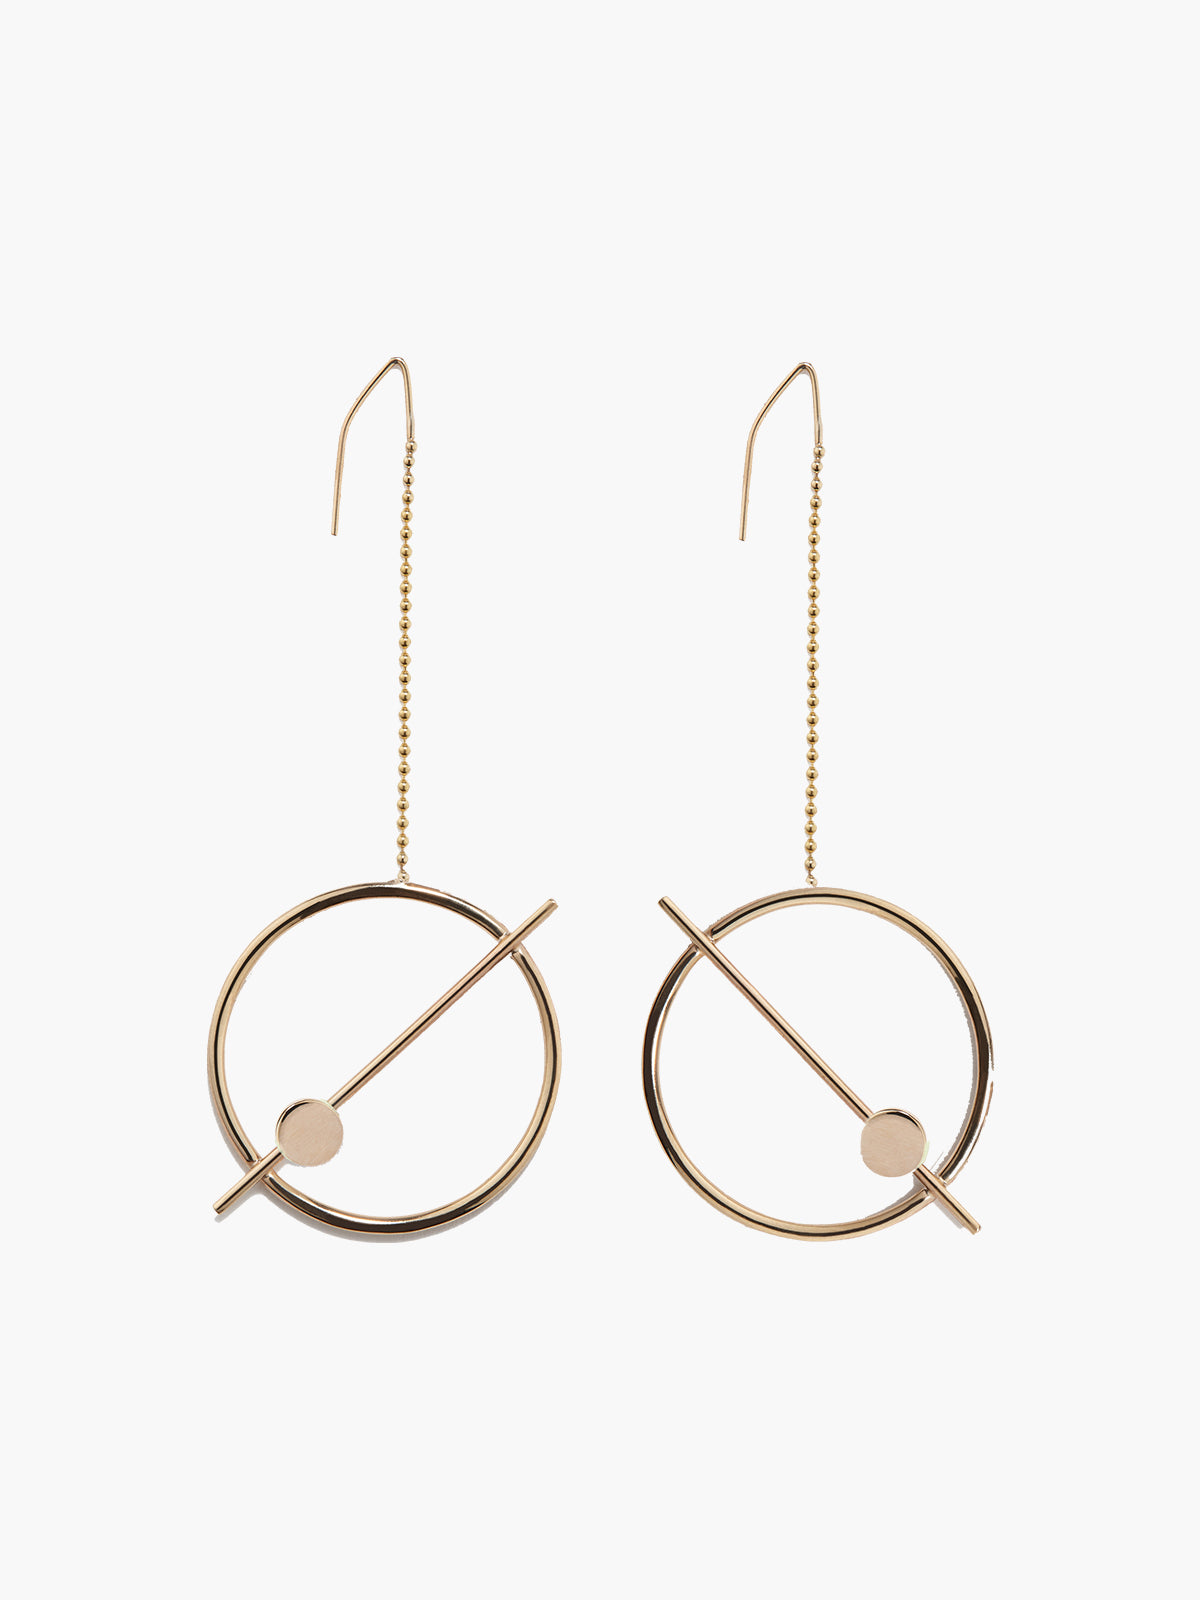 Exclusive Boreas III Earrings Exclusive Boreas III Earrings